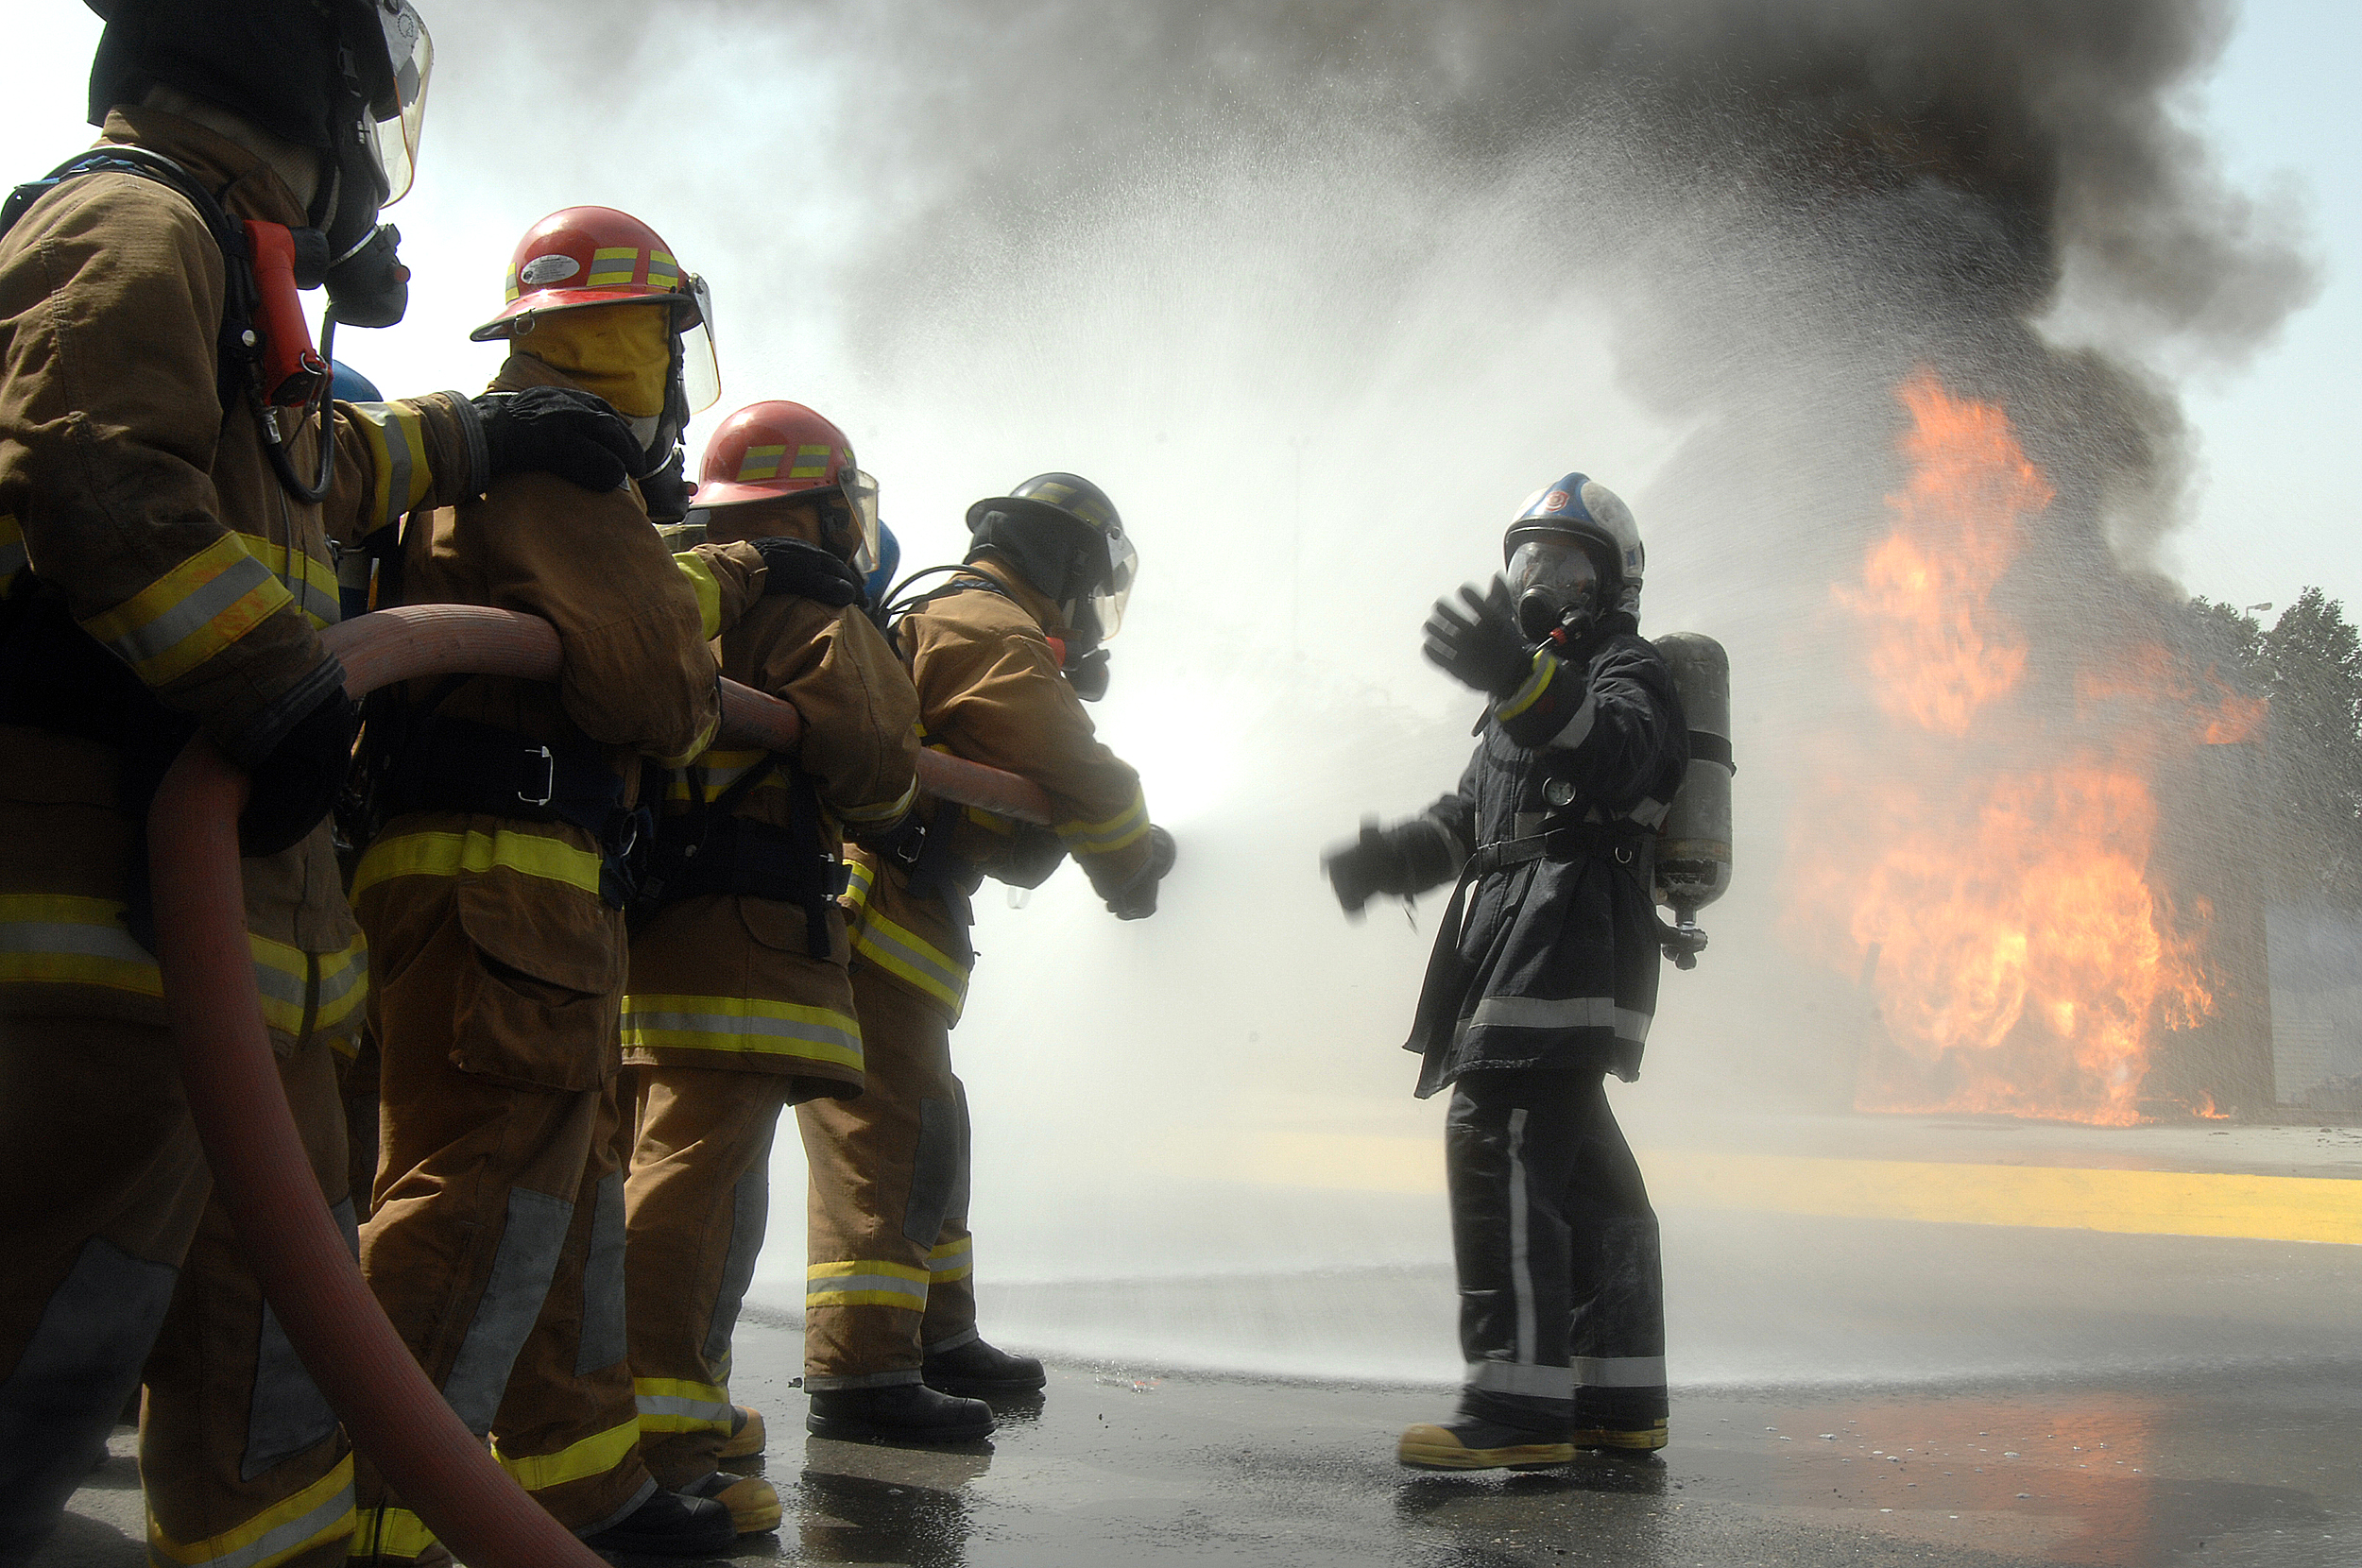 history of the fire service essay